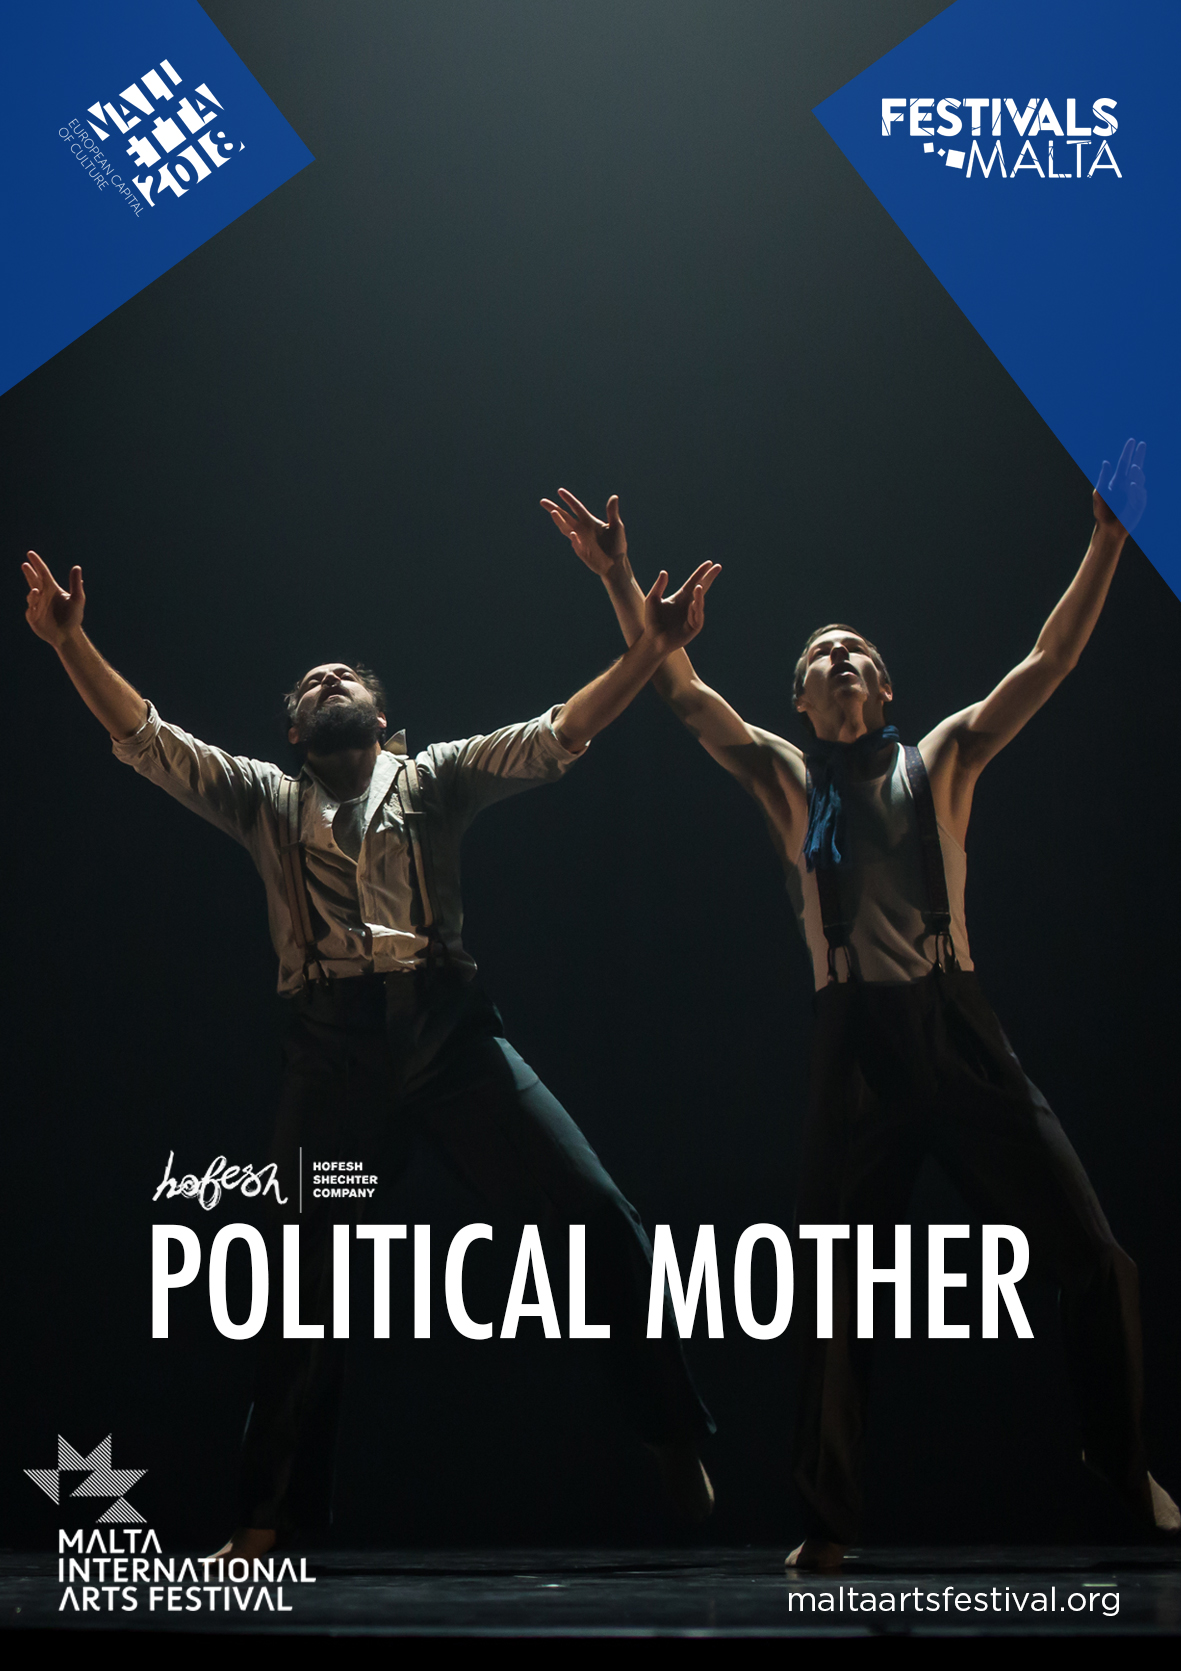 Political Mother by Hofesh Shechter Company flyer